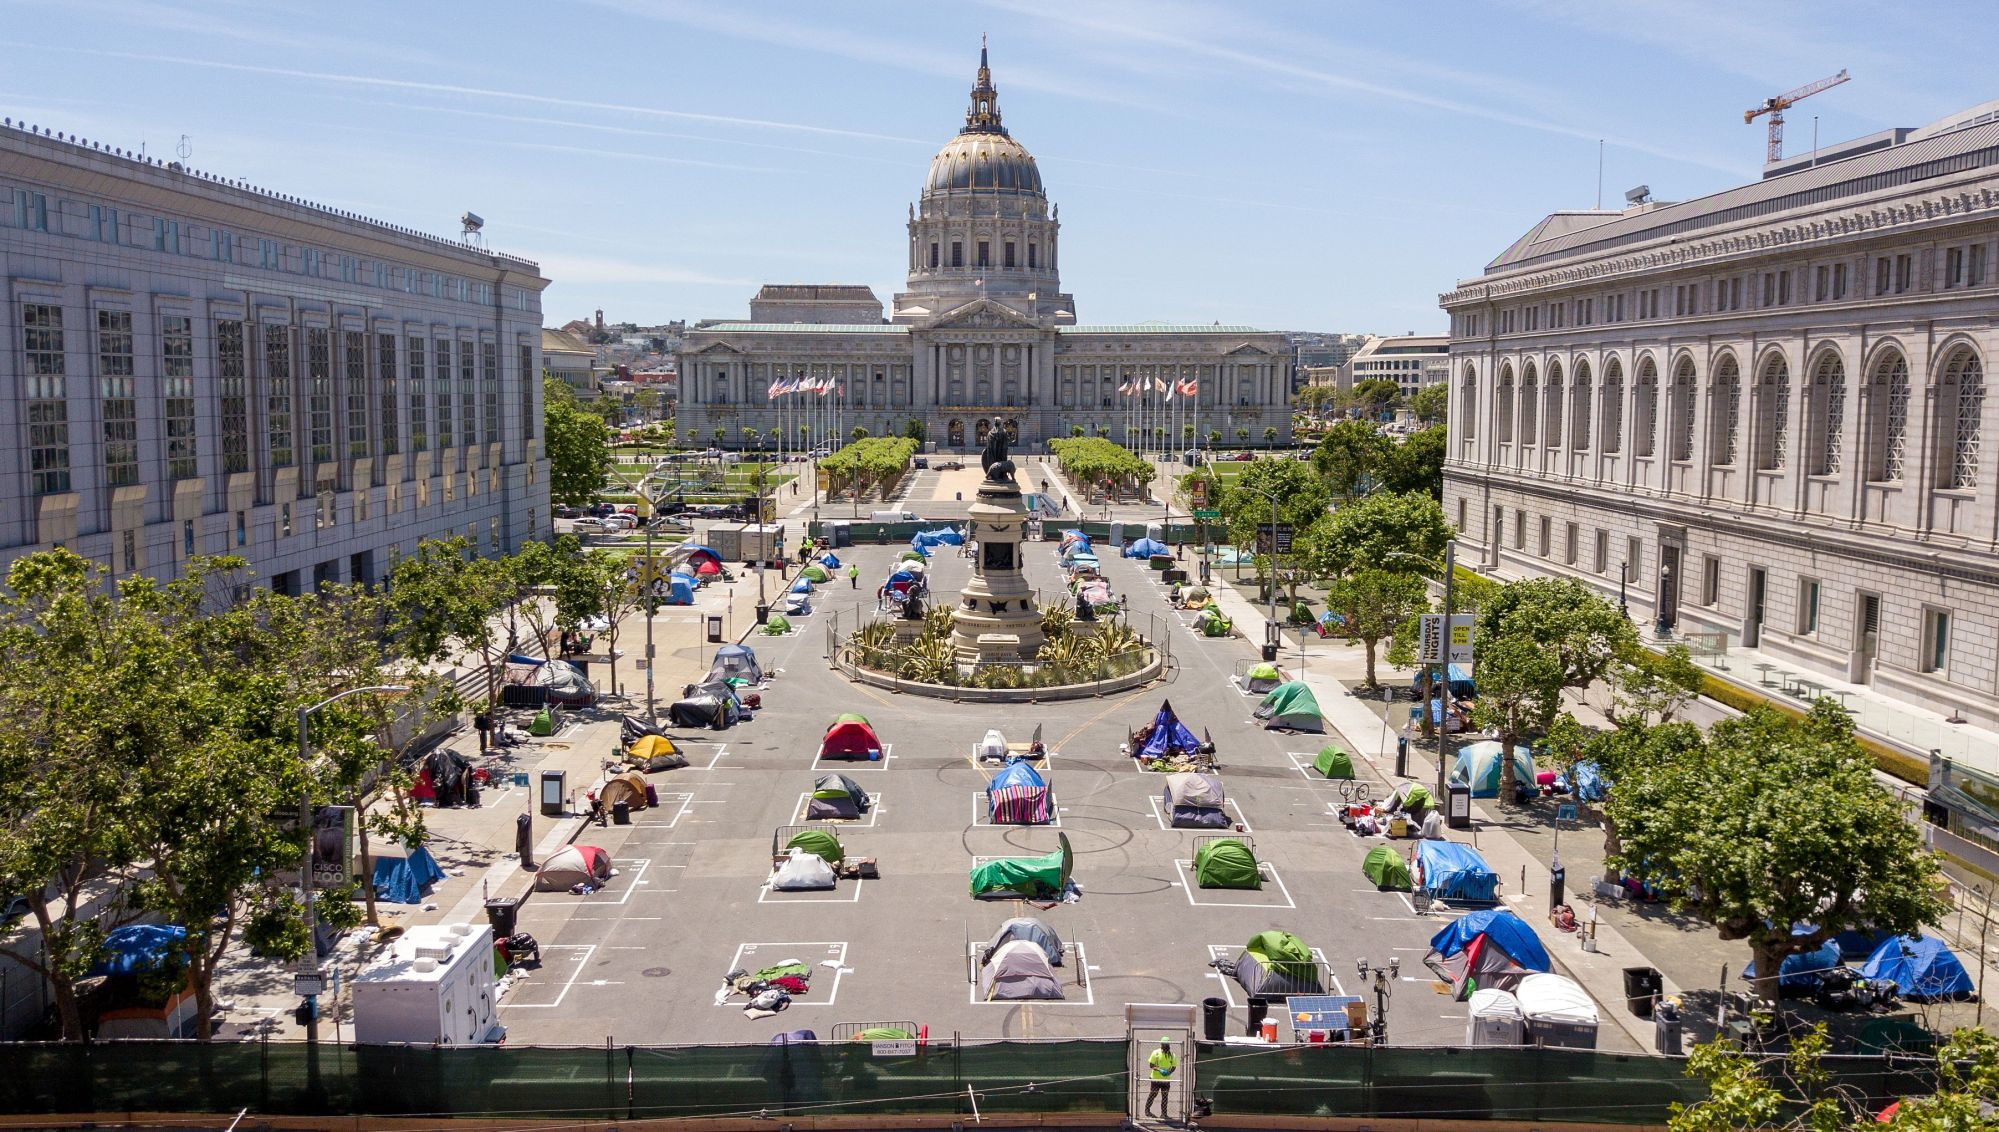 An aerial view shows squares painted on the ground to encourage homeless people to keep to social distancing at a city-sanctioned homeless encampment across from City Hall in San Francisco, California, on May 22, 2020, amid the novel coronavirus pandemic. (Josh Edelson/AFP via Getty Images)